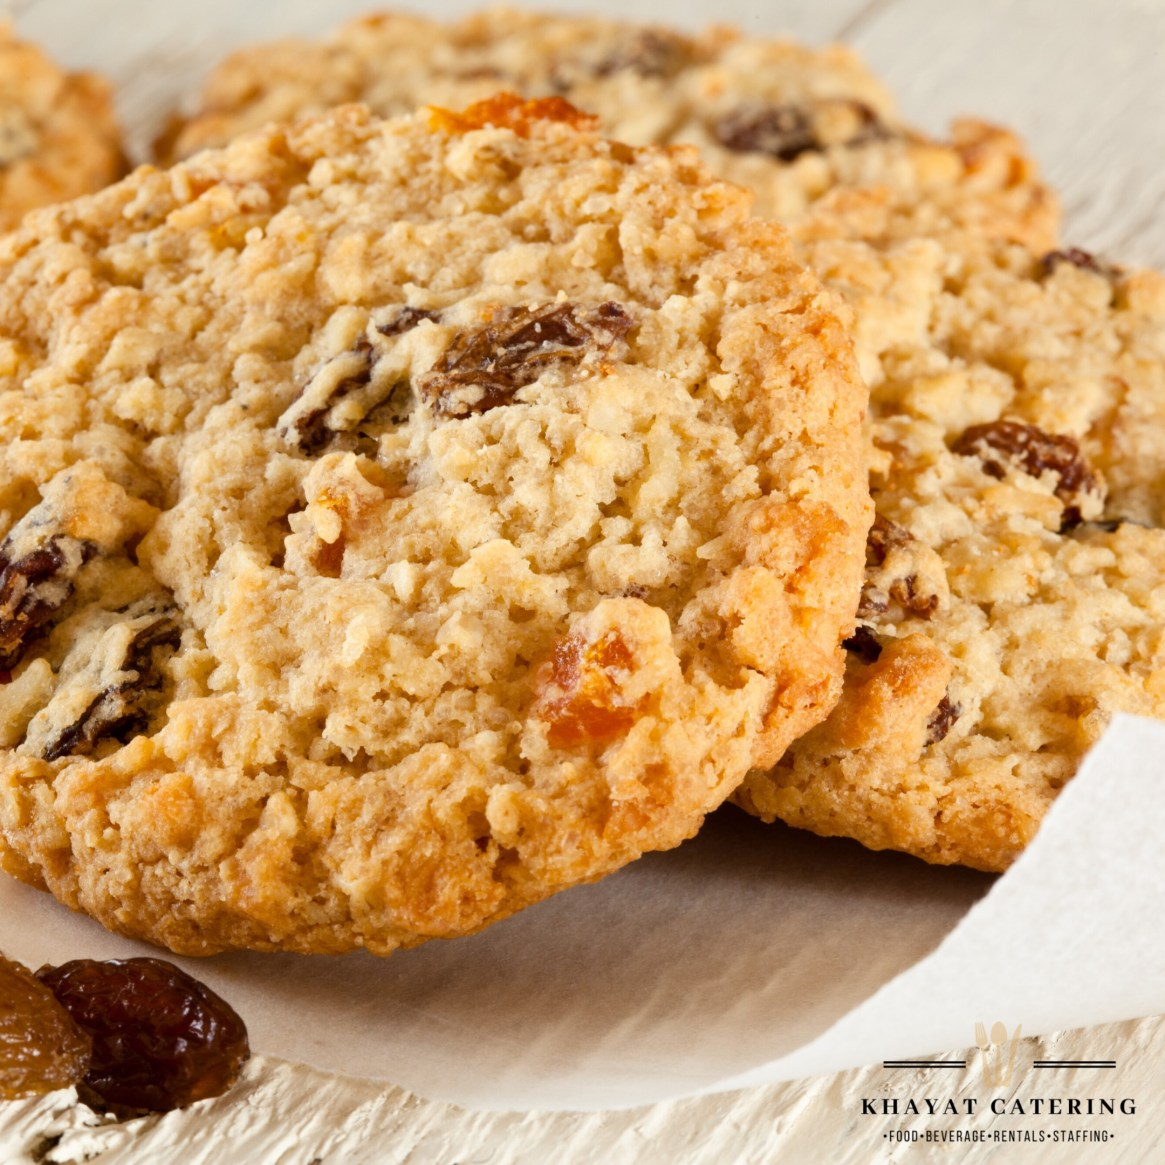 Khayat Catering oatmeal raisin cookies